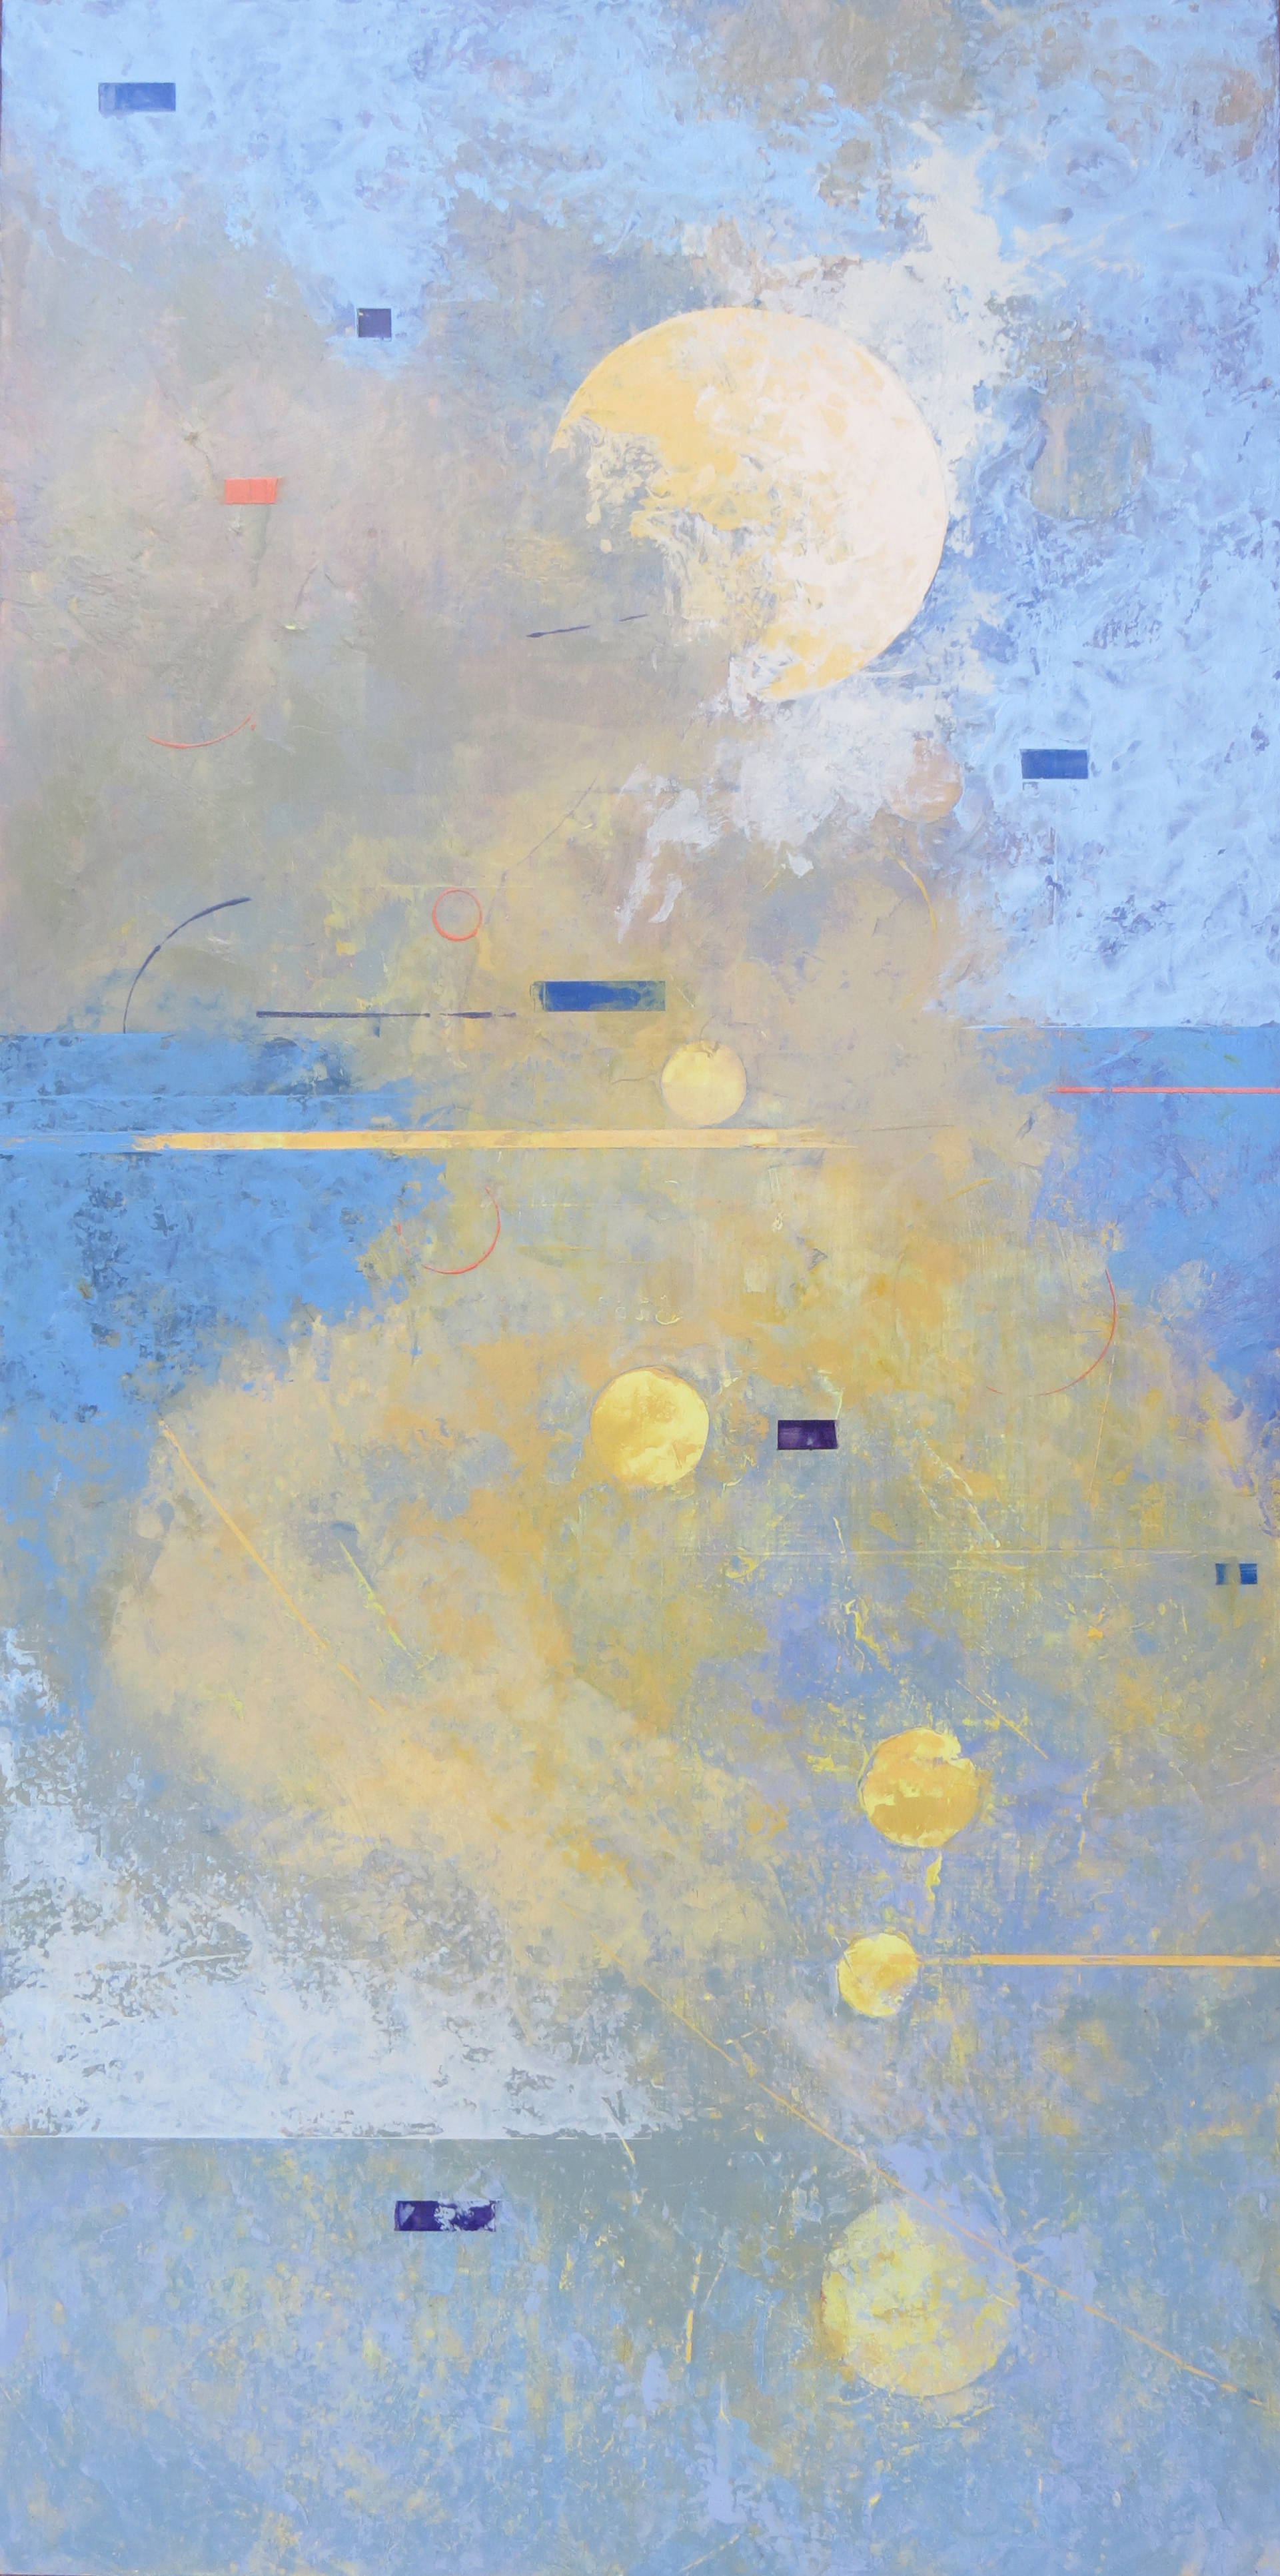 """FROM THE MYSTERY  Clouded, mysterious, the lower a quiet, bounded form. A light mist obscuring, gently stirring the confining, stretching away now into the distance. Glorious burst emerges into the light of momentary clarity.  40 x 20"""" 